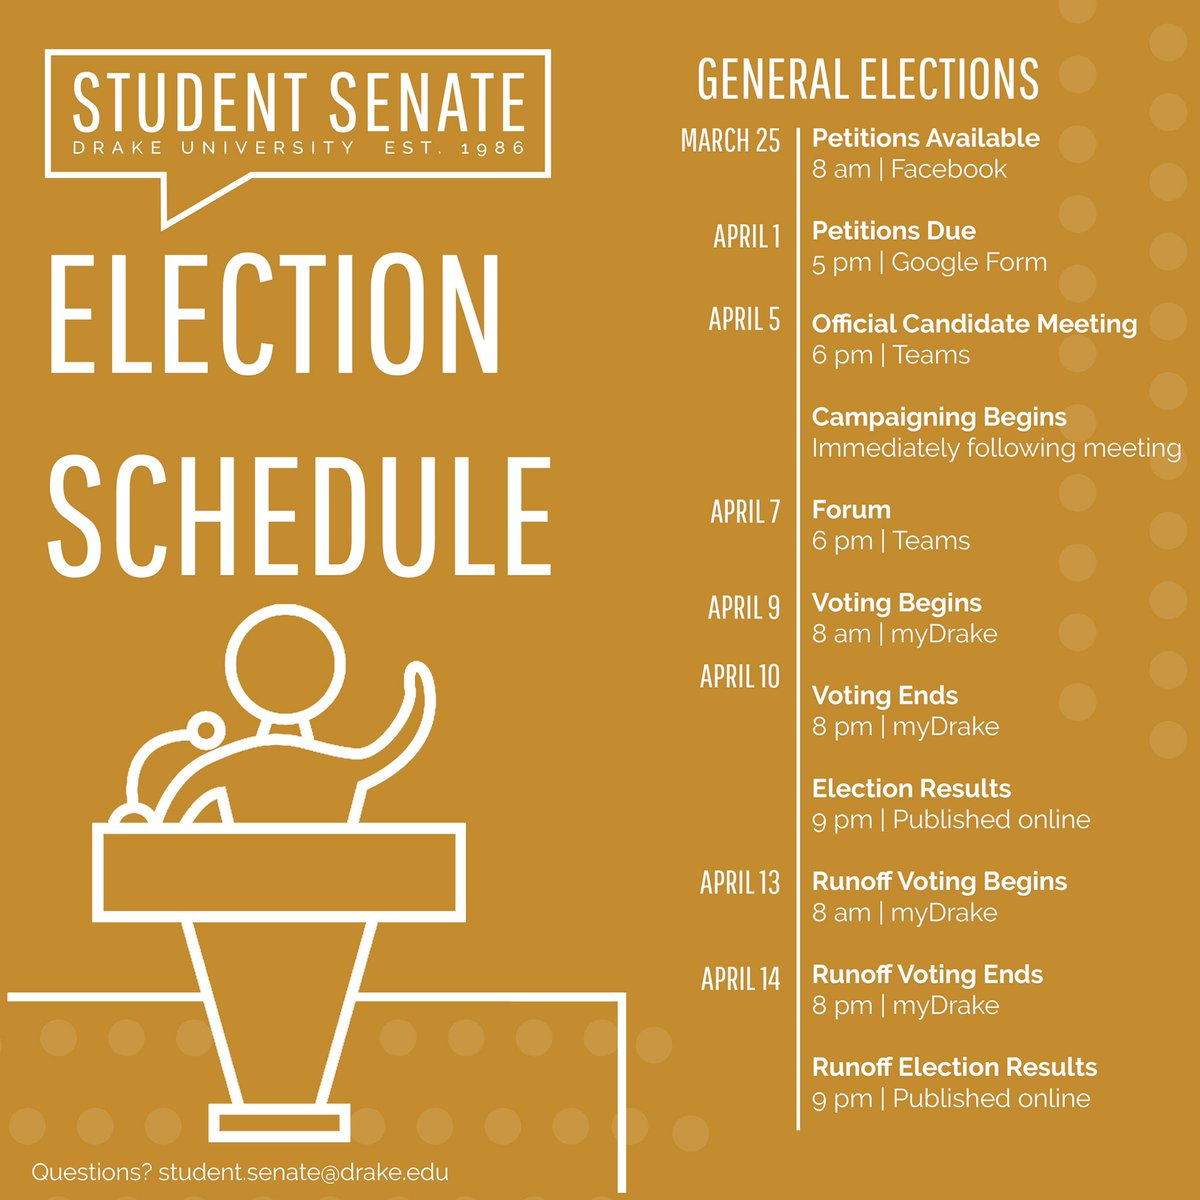 Back-to-back elections? You bet. Mark your calendars for this week's general election events.